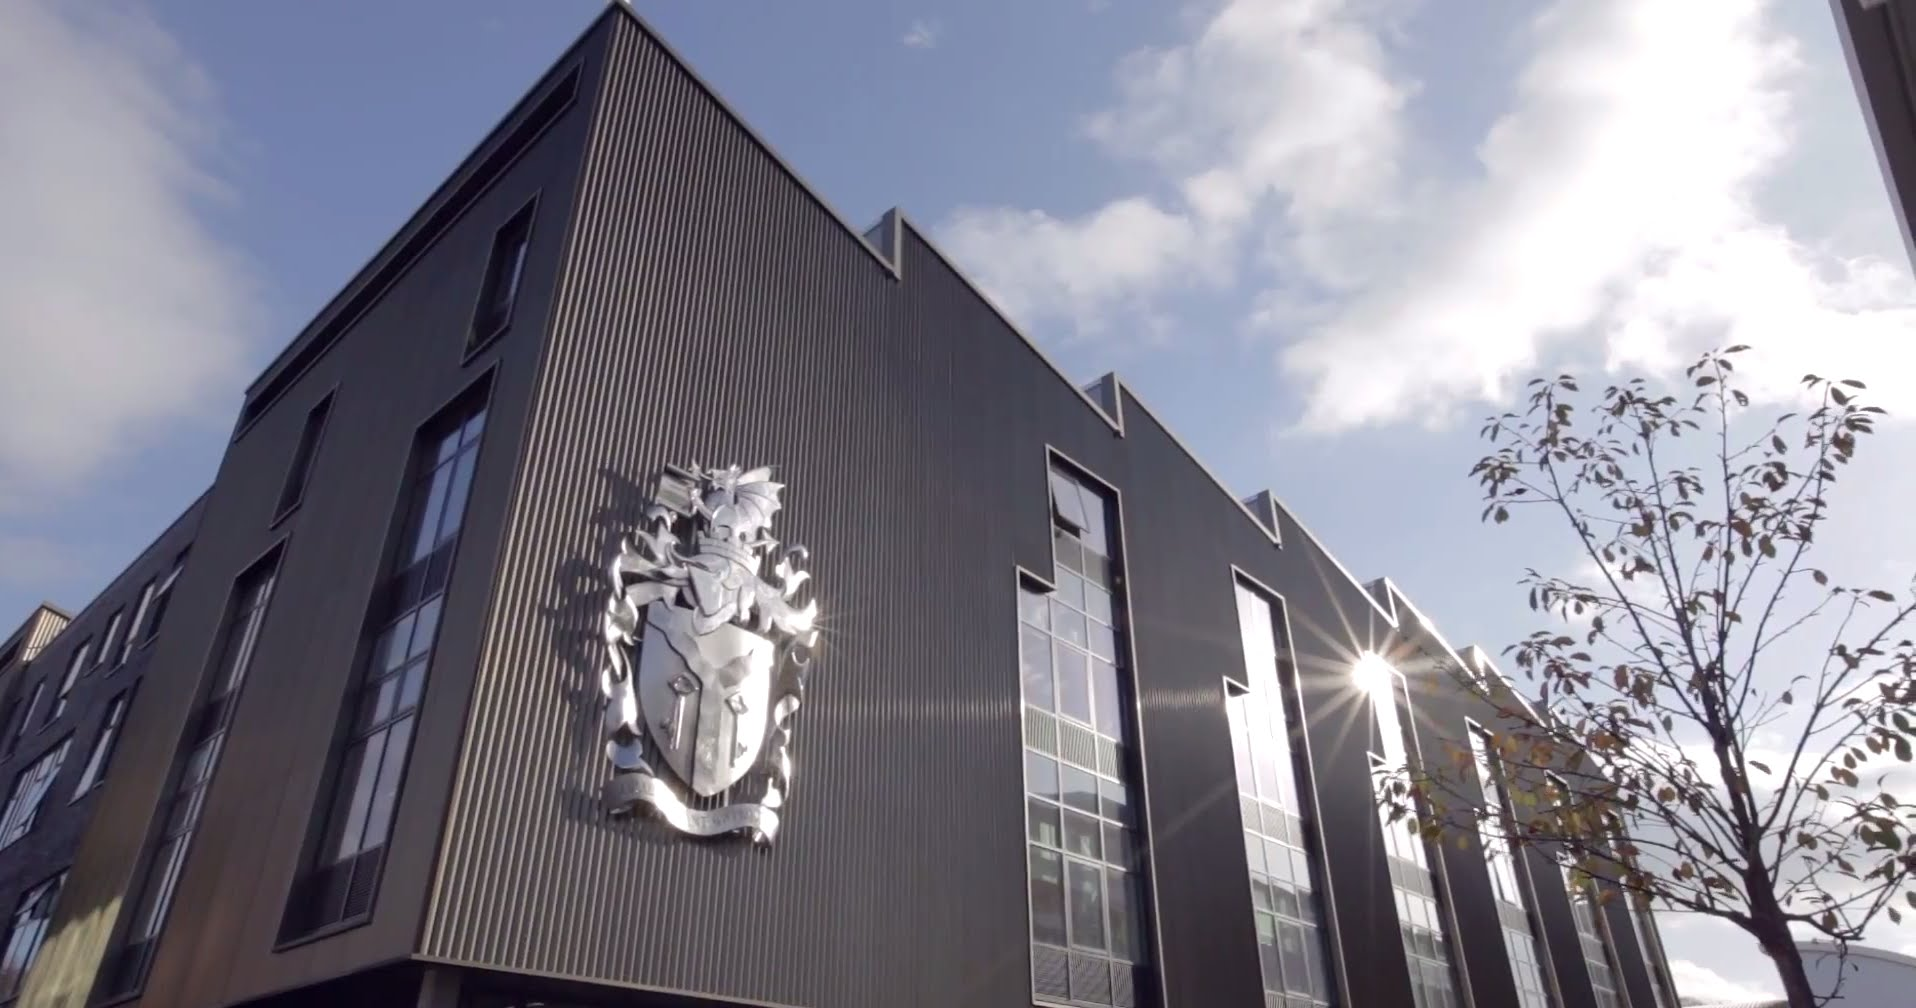 Cardiff Met logo on building